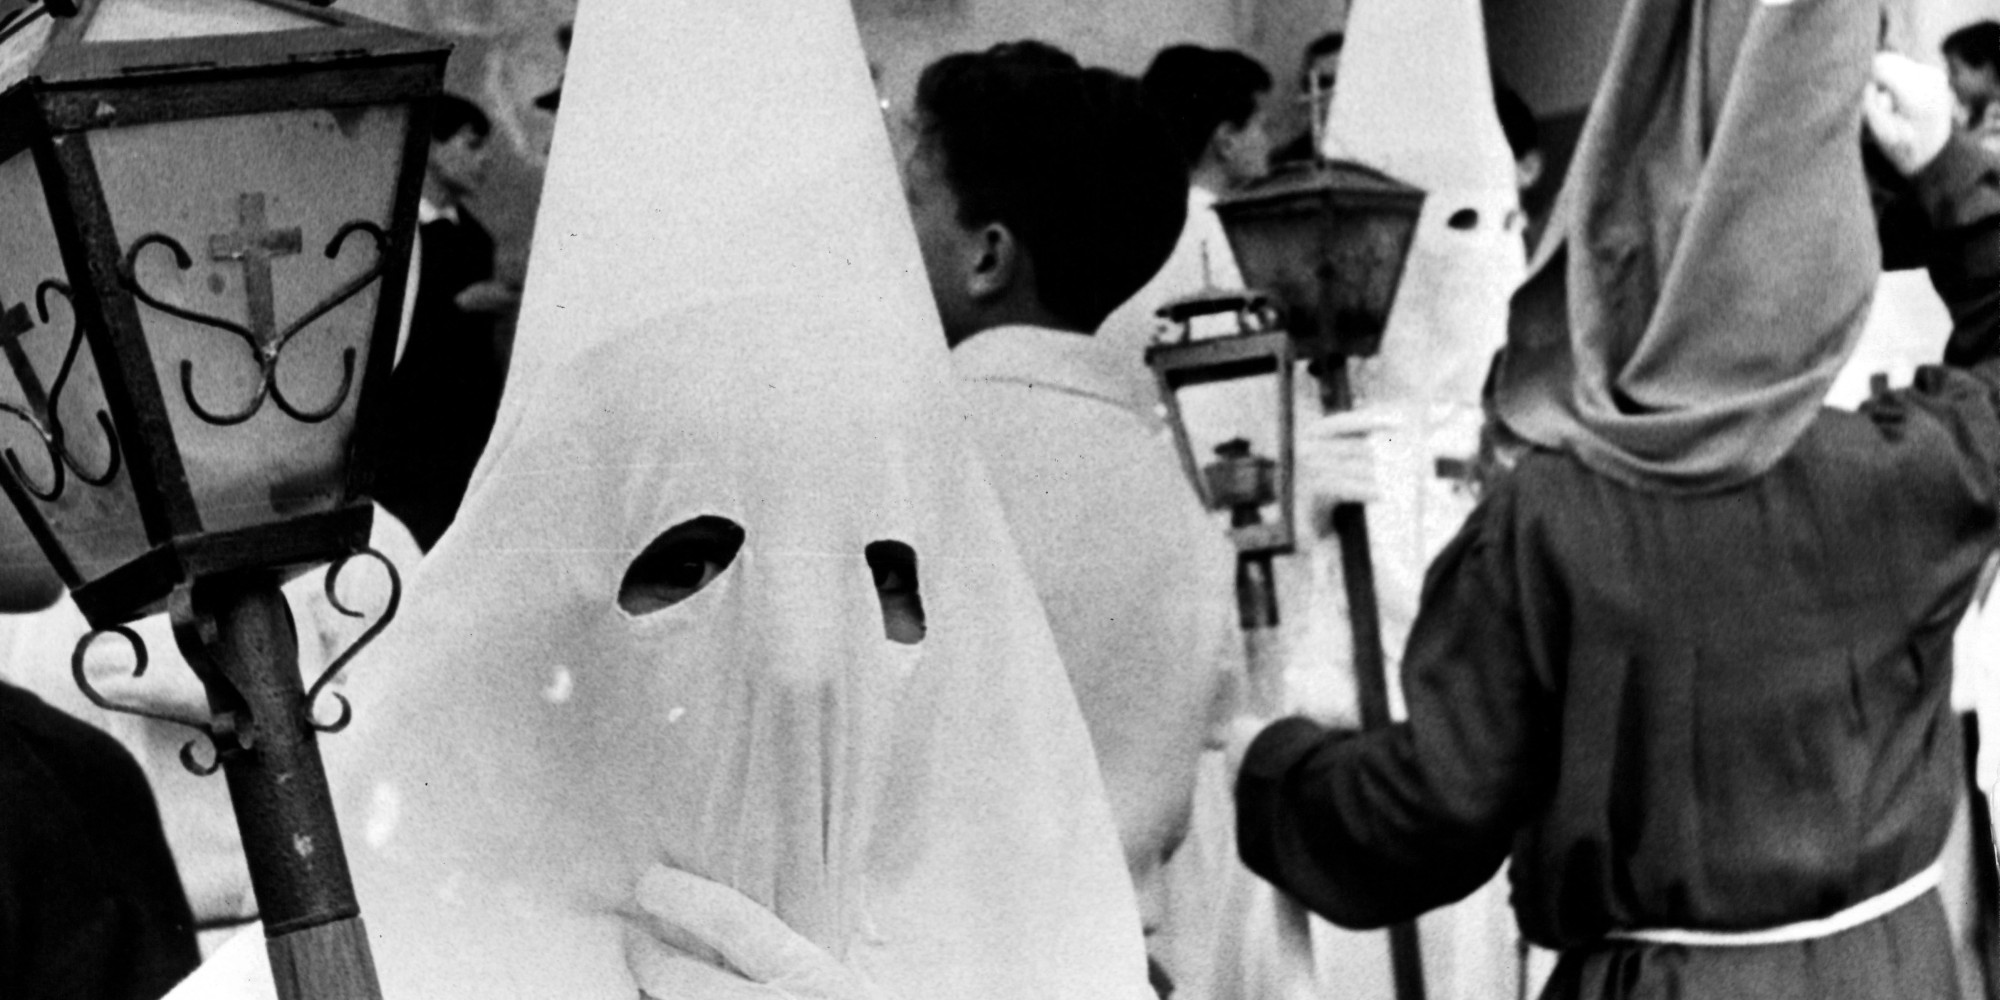 essay on klu klux klan Sociologist and ku klux klan scholar david cunningham discusses the five  questions he is most frequently asked about the klan.